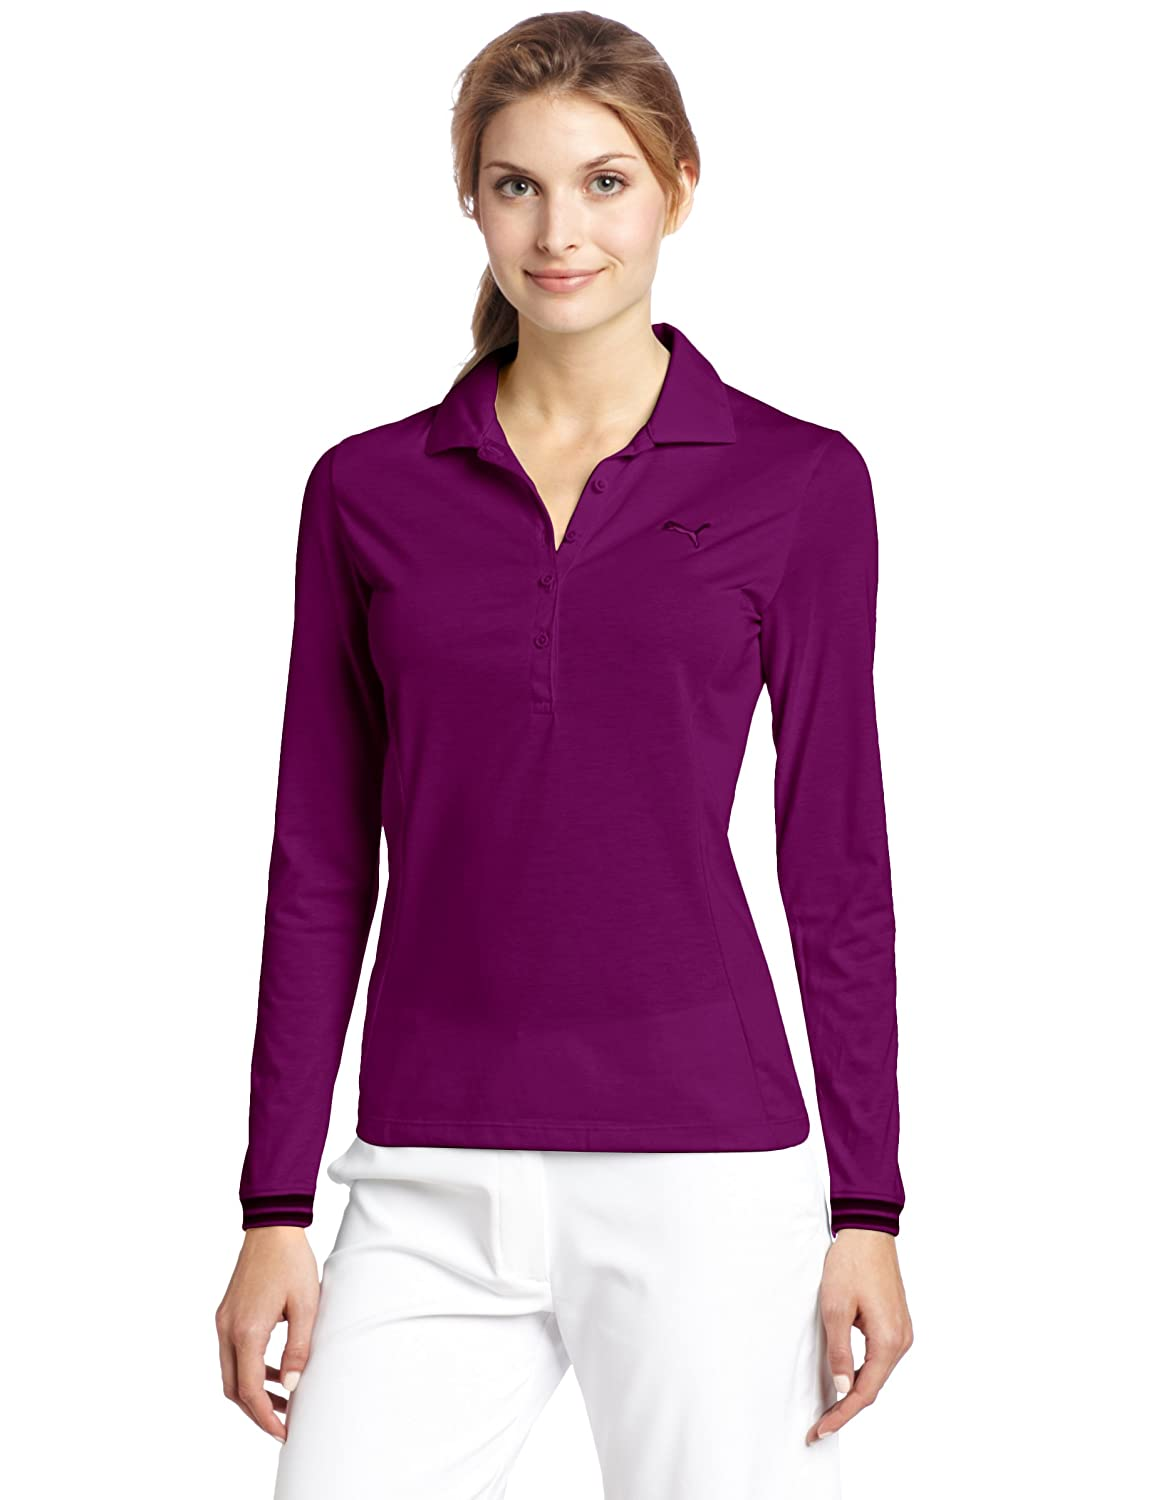 Amazon.com : Puma Golf Women's Sport Long Sleeve Polo Tee : Golf ...